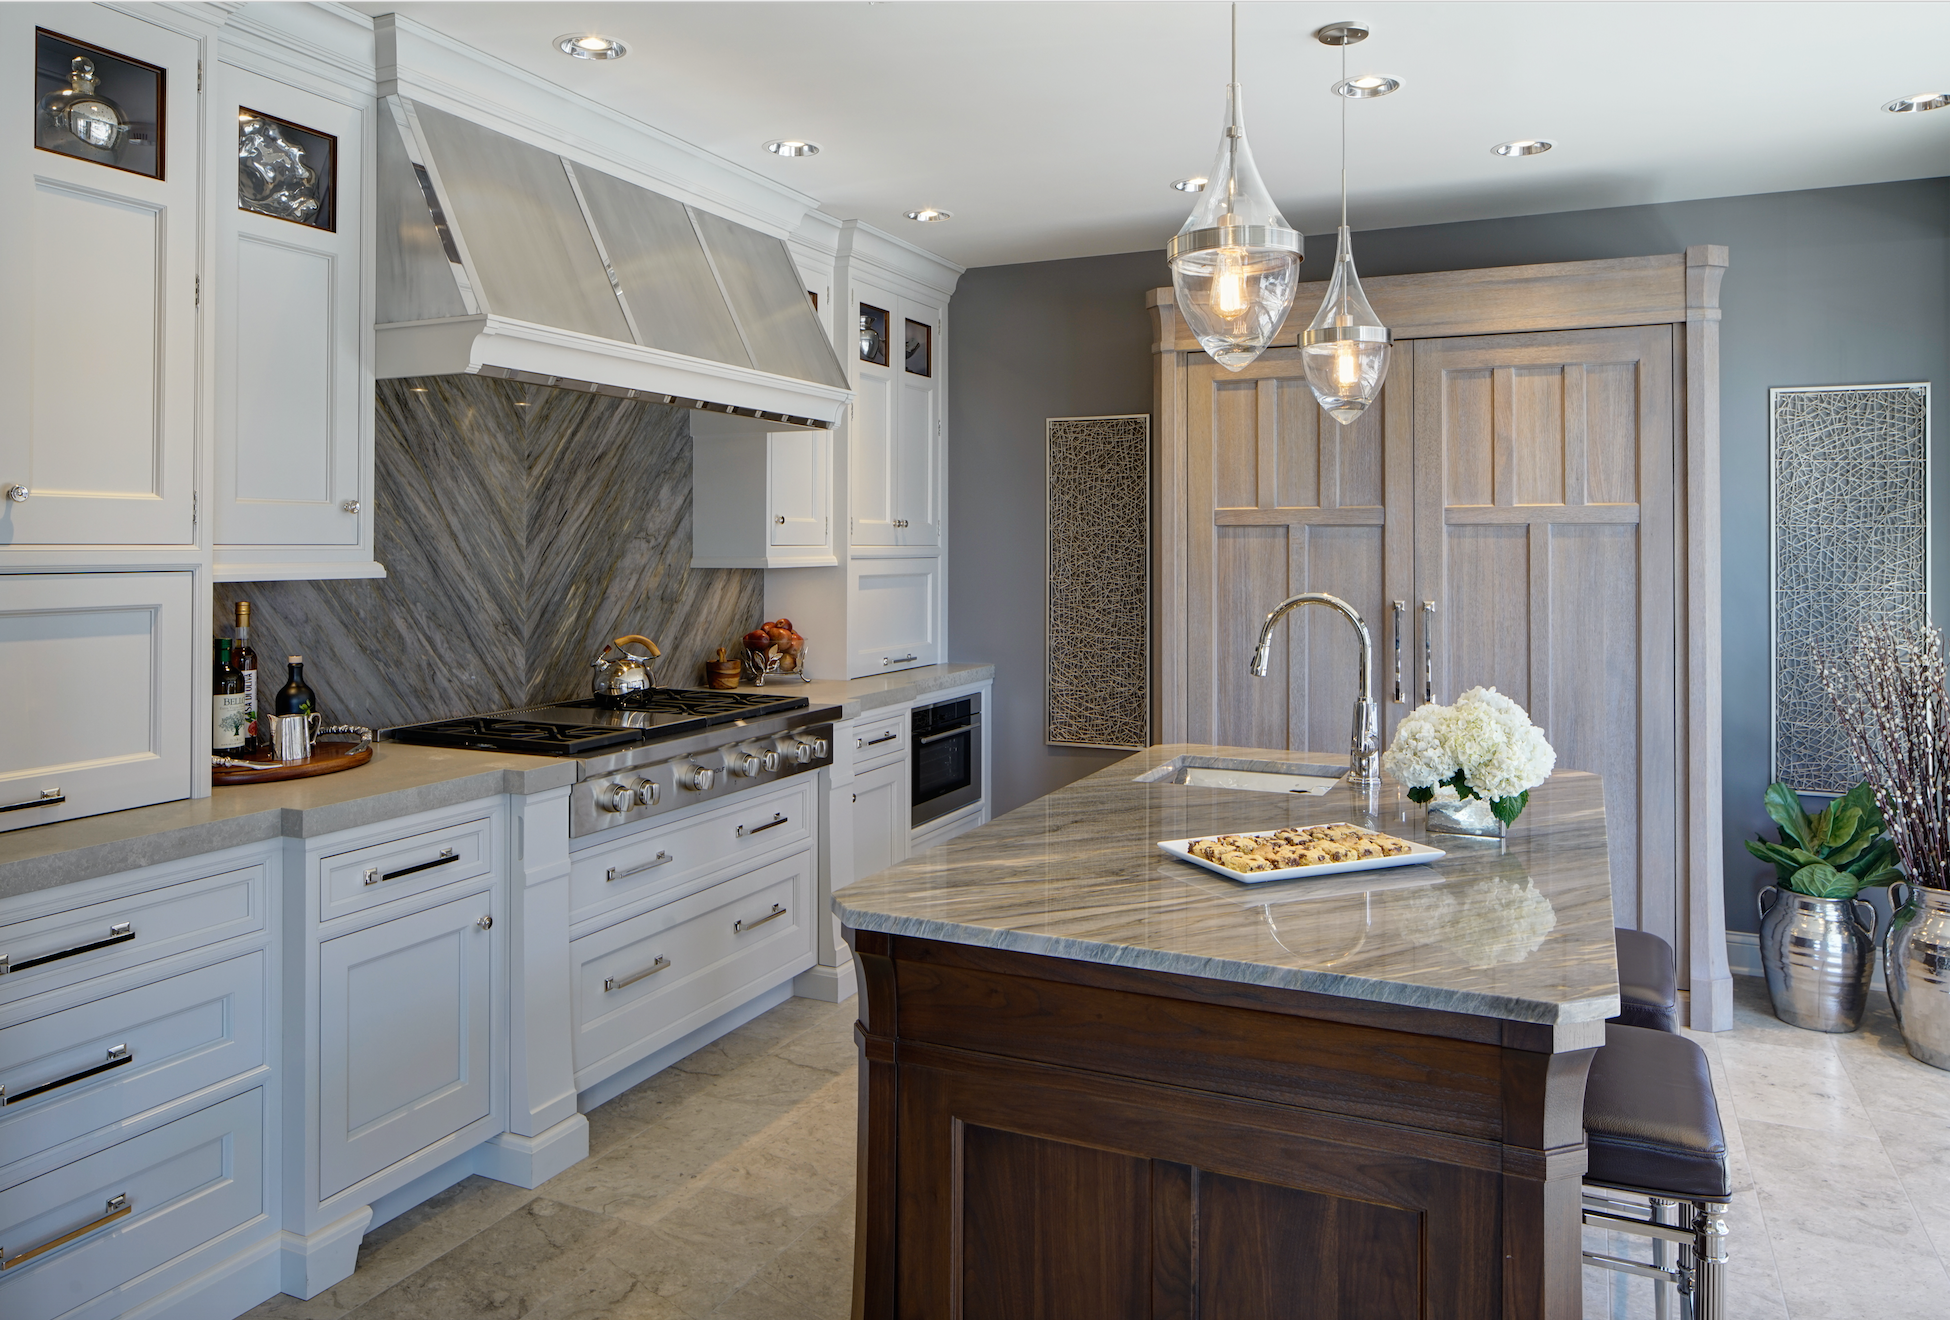 Rutt cabinetrys ruskin series is designed by scott stultz drury designs team imagined this transitional